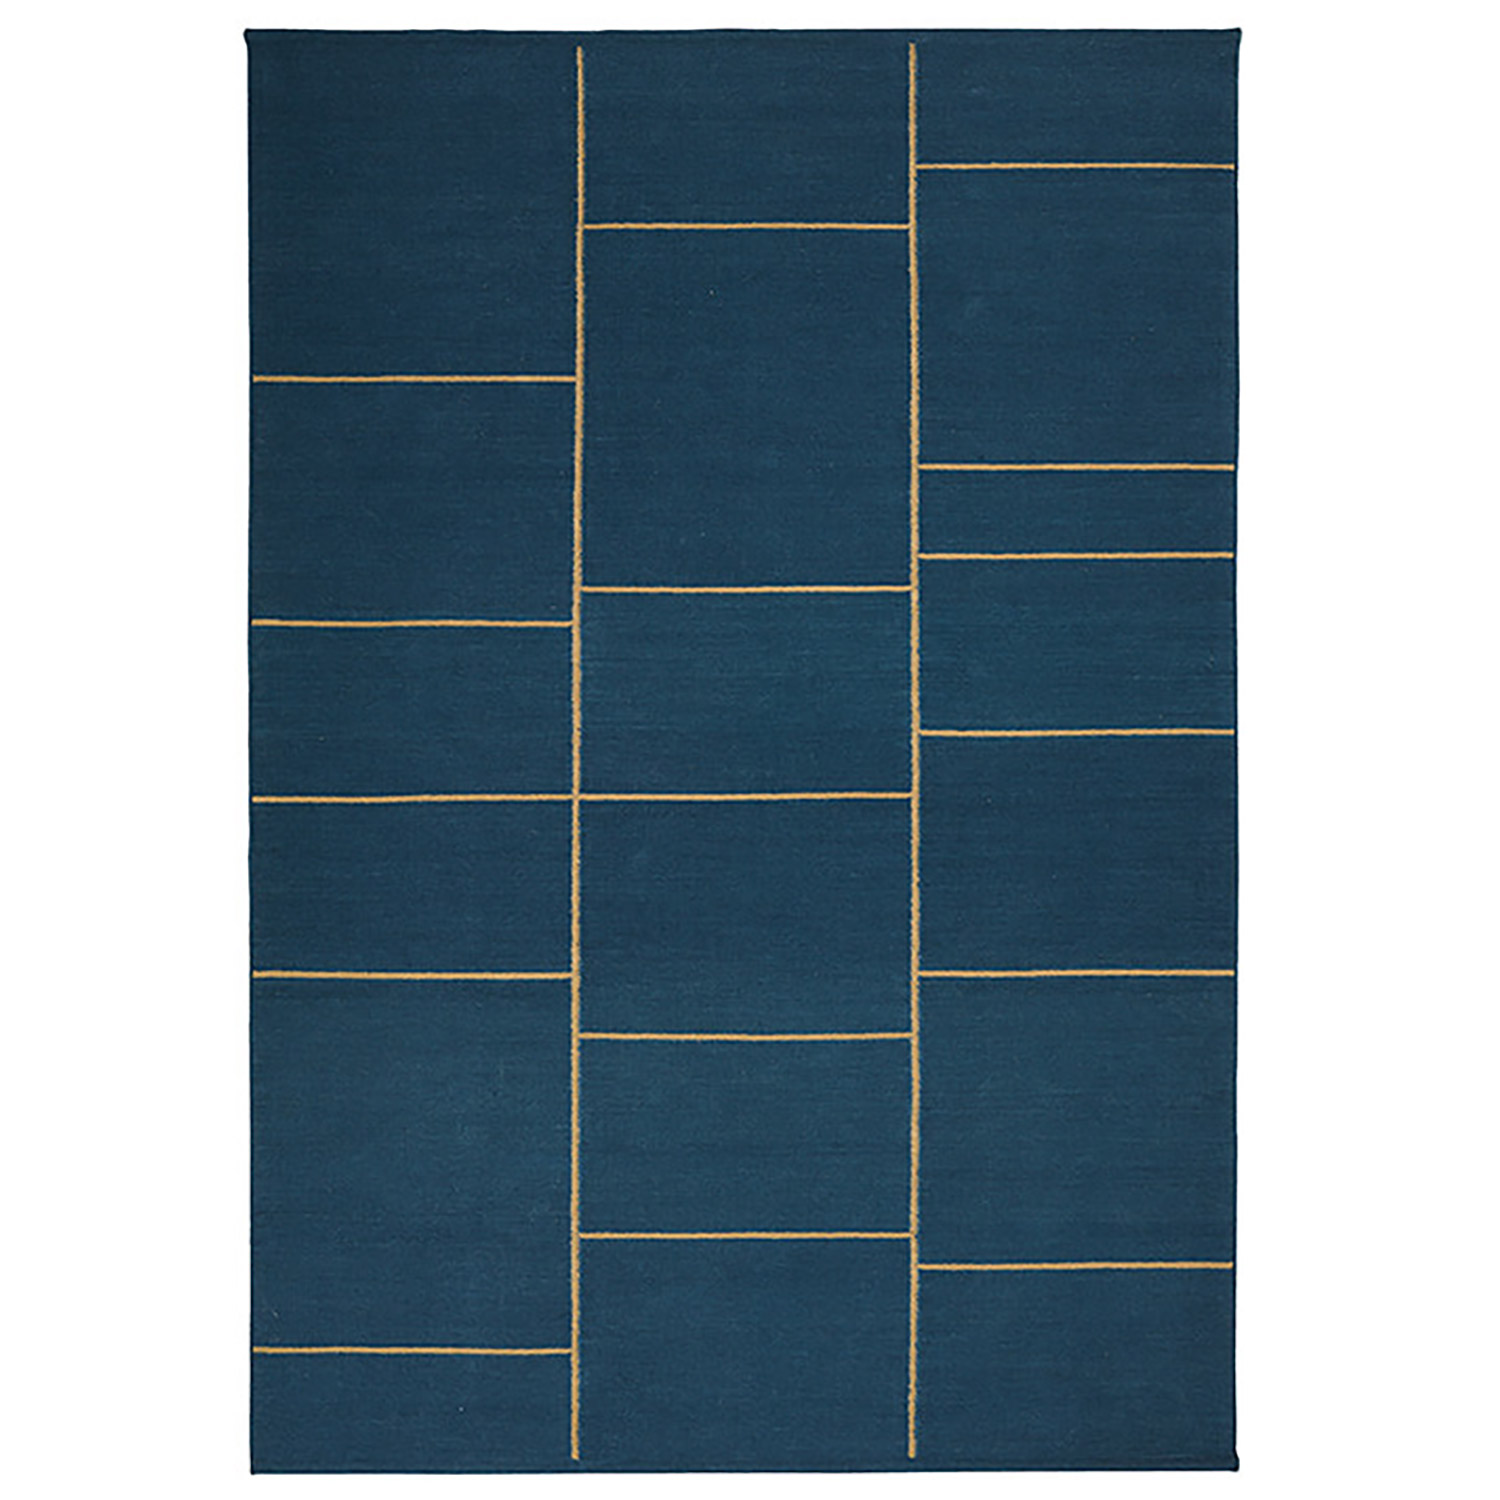 Sita Dhurry Wool matto 230x320, dark blue abrush/beige